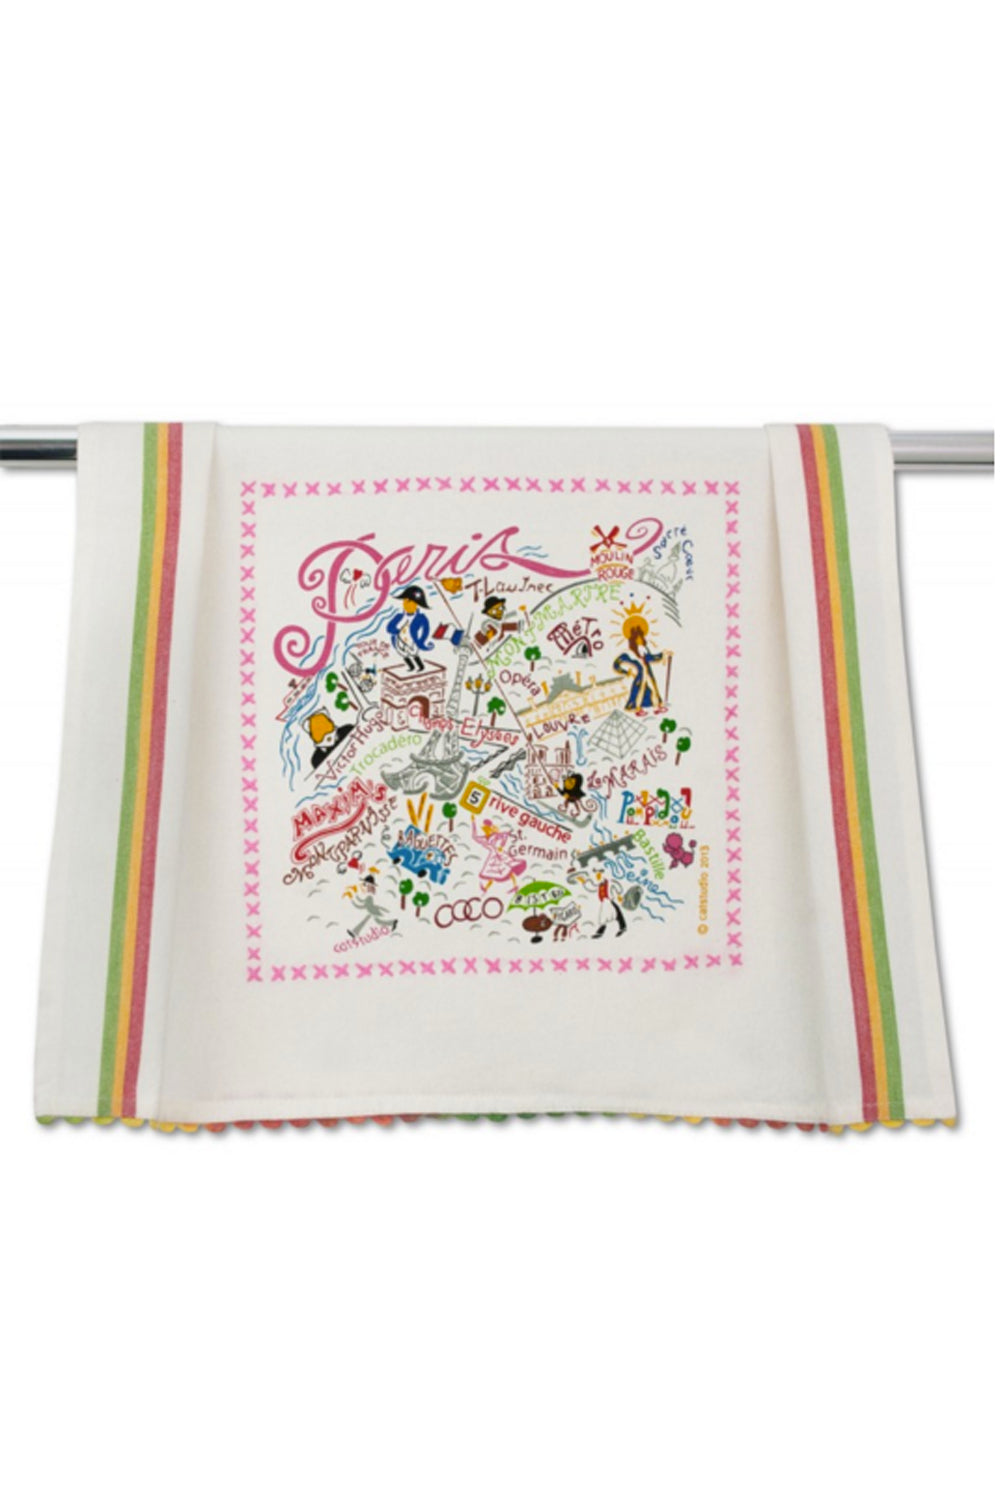 Embroidered Dish Towel - Paris